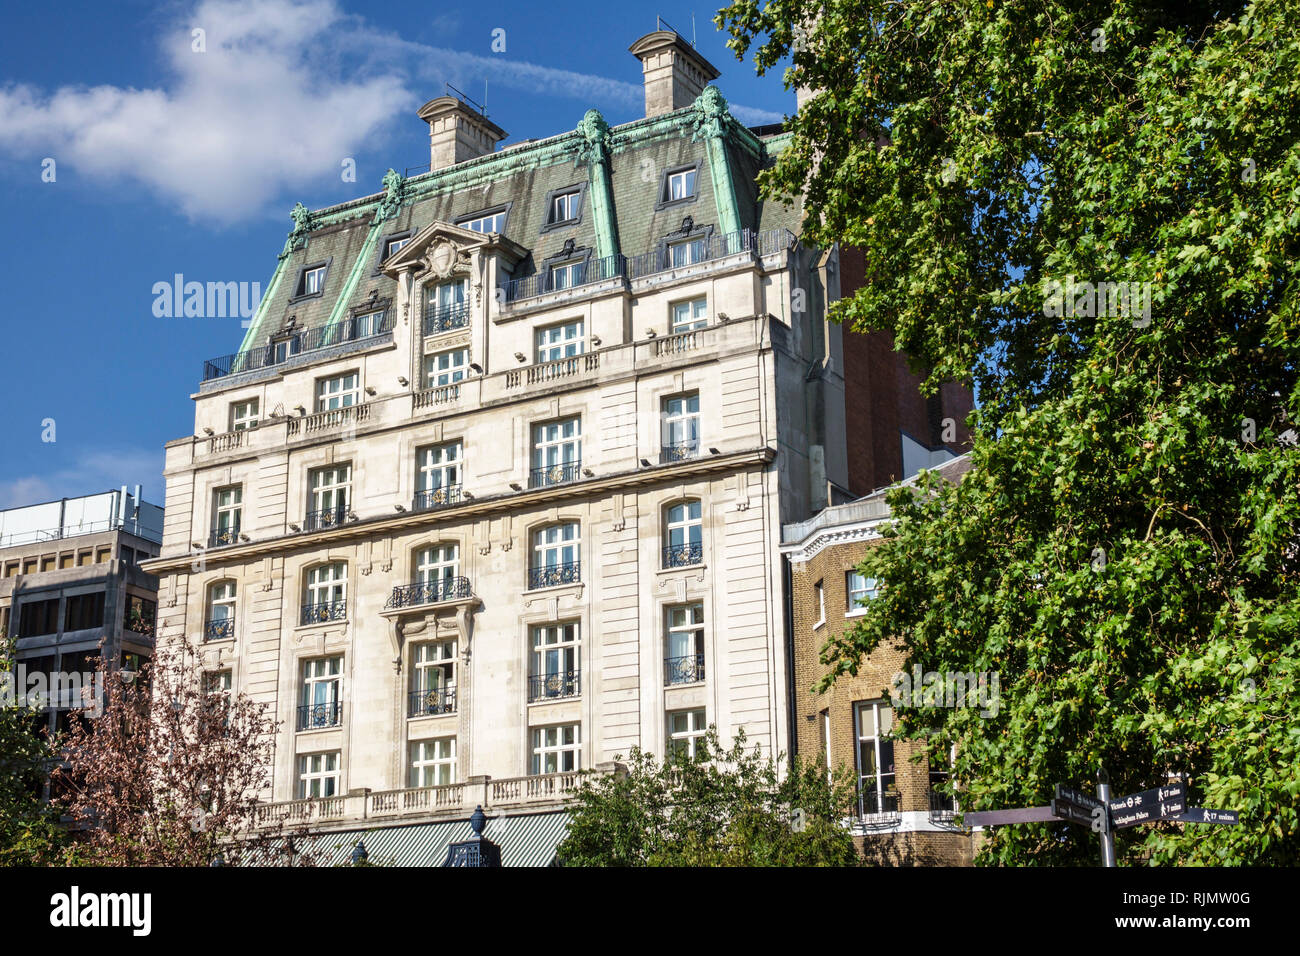 London England United Kingdom Great Britain West End Piccadilly Green Park Ritz Carlton Hotel historic Grade II listed building 5-star luxury hotel ex - Stock Image